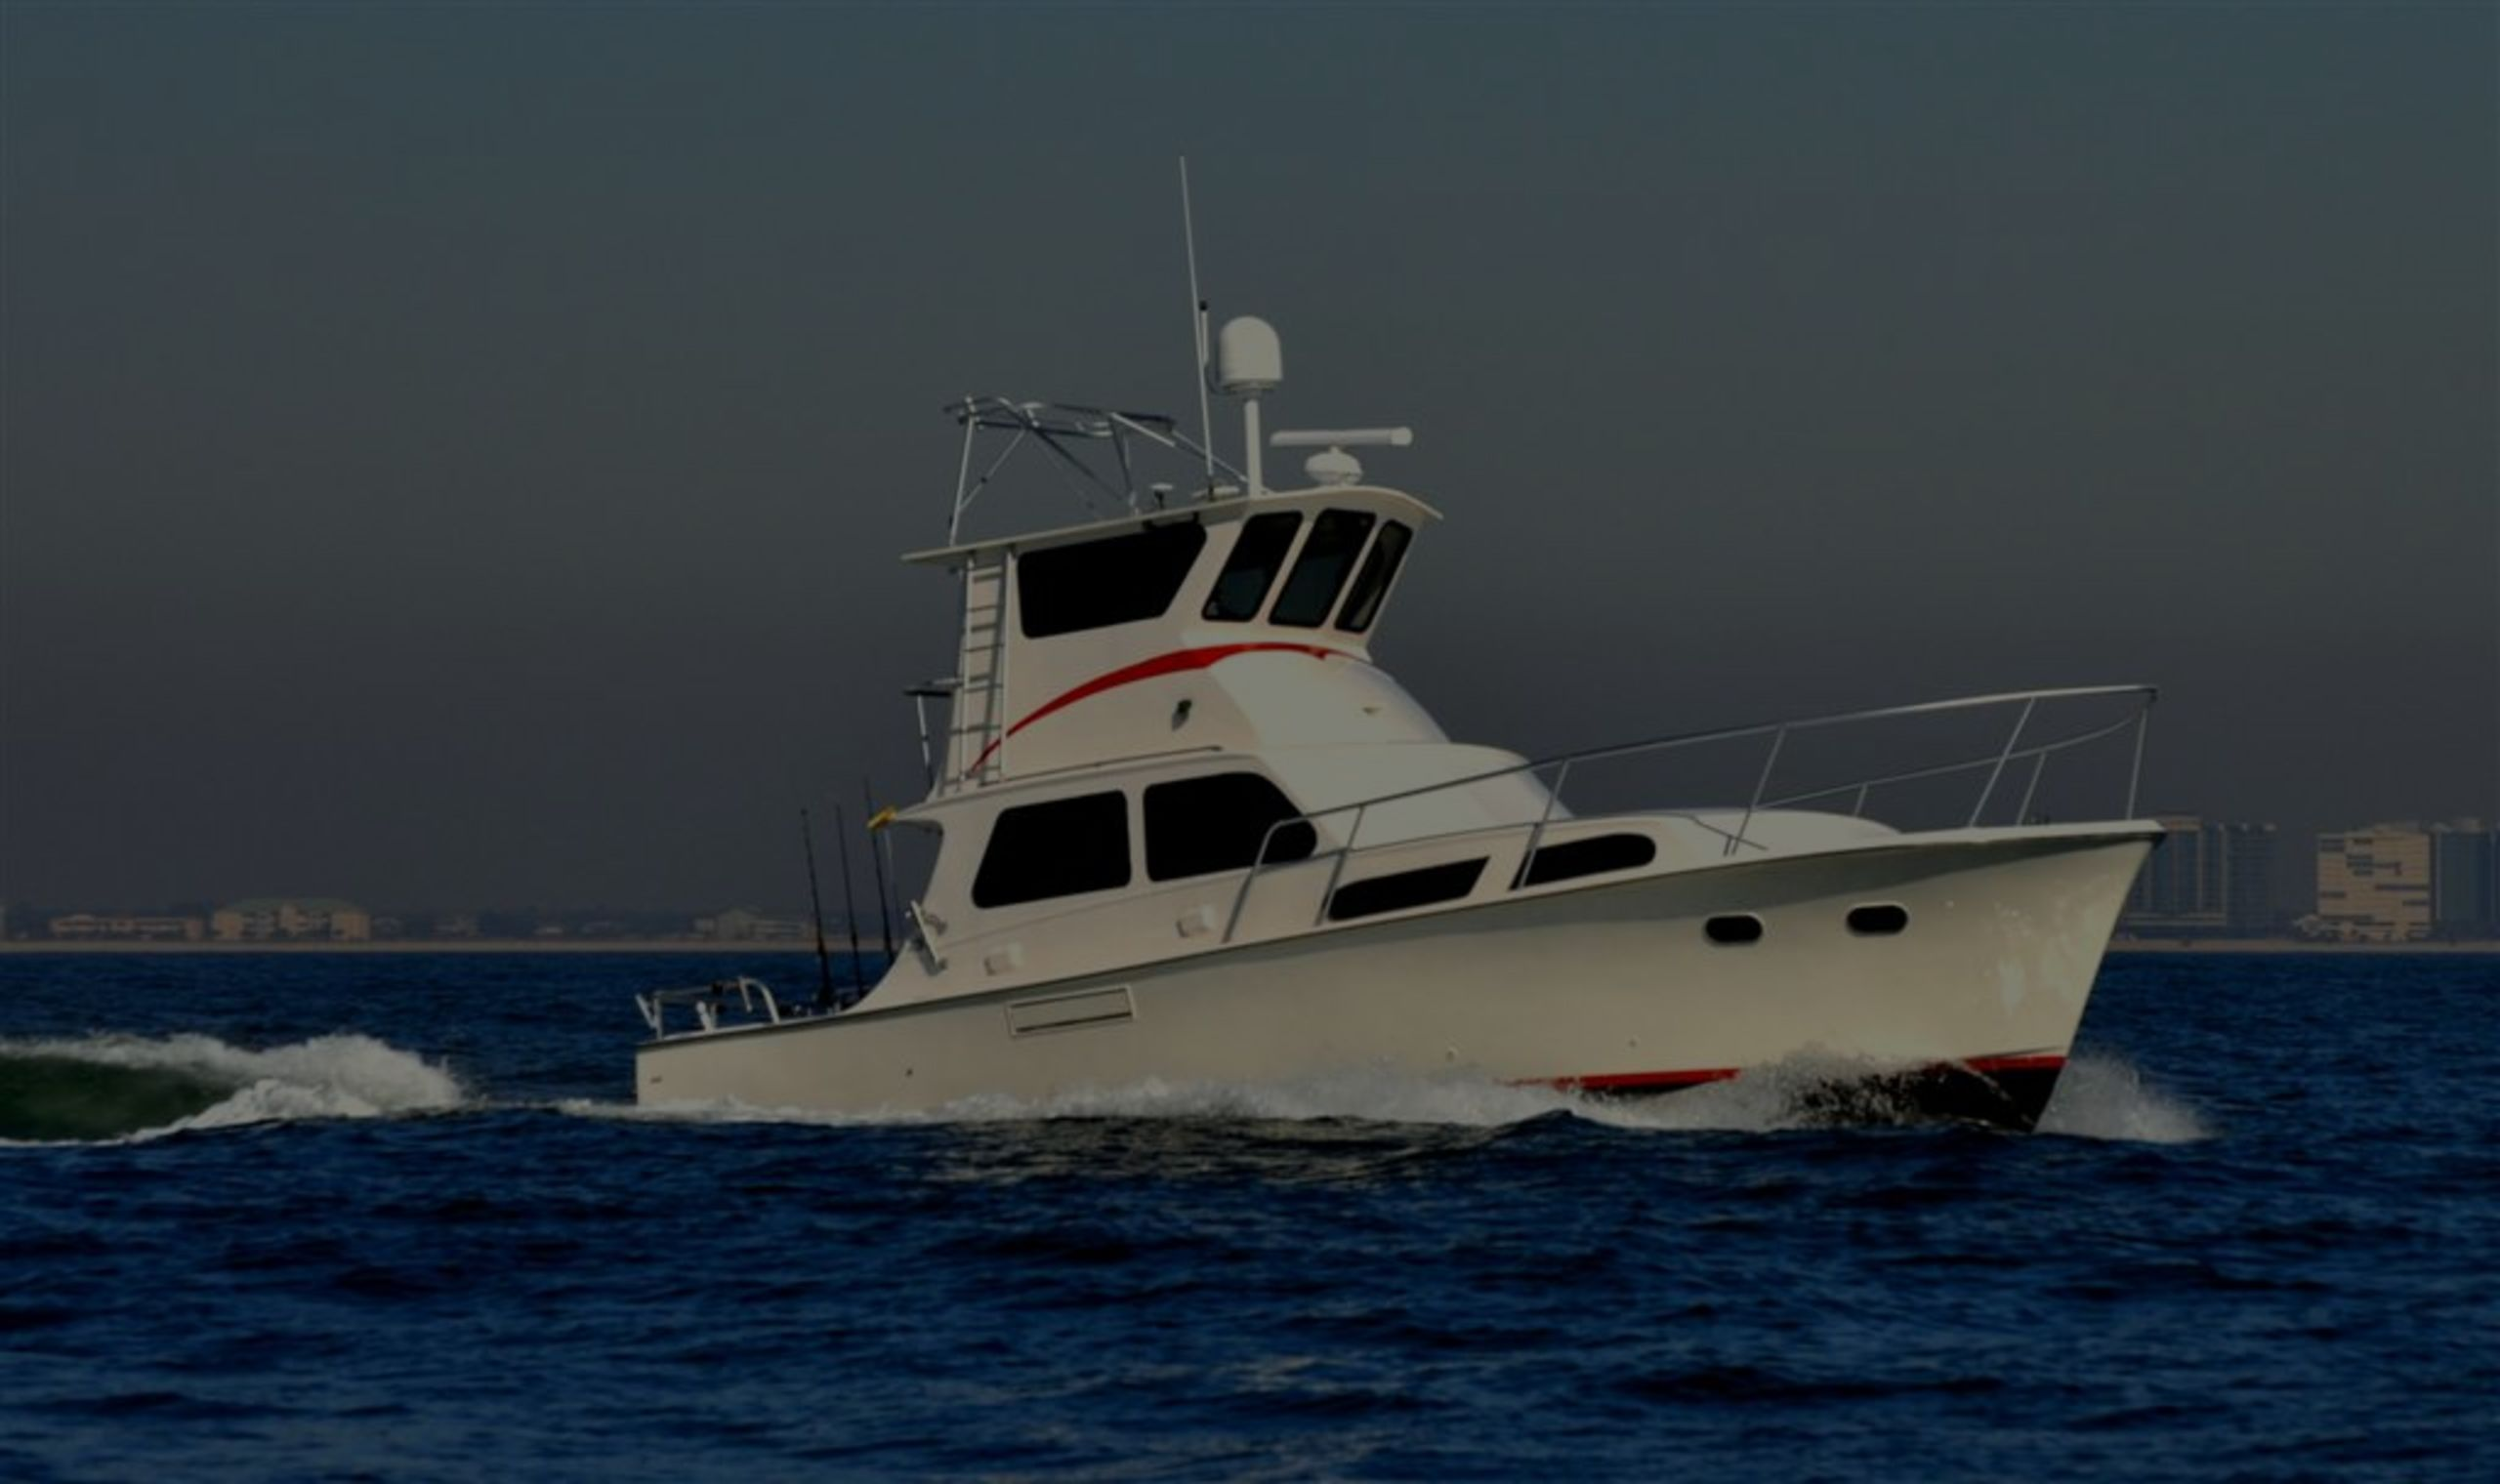 One of the Many Fishing Charters